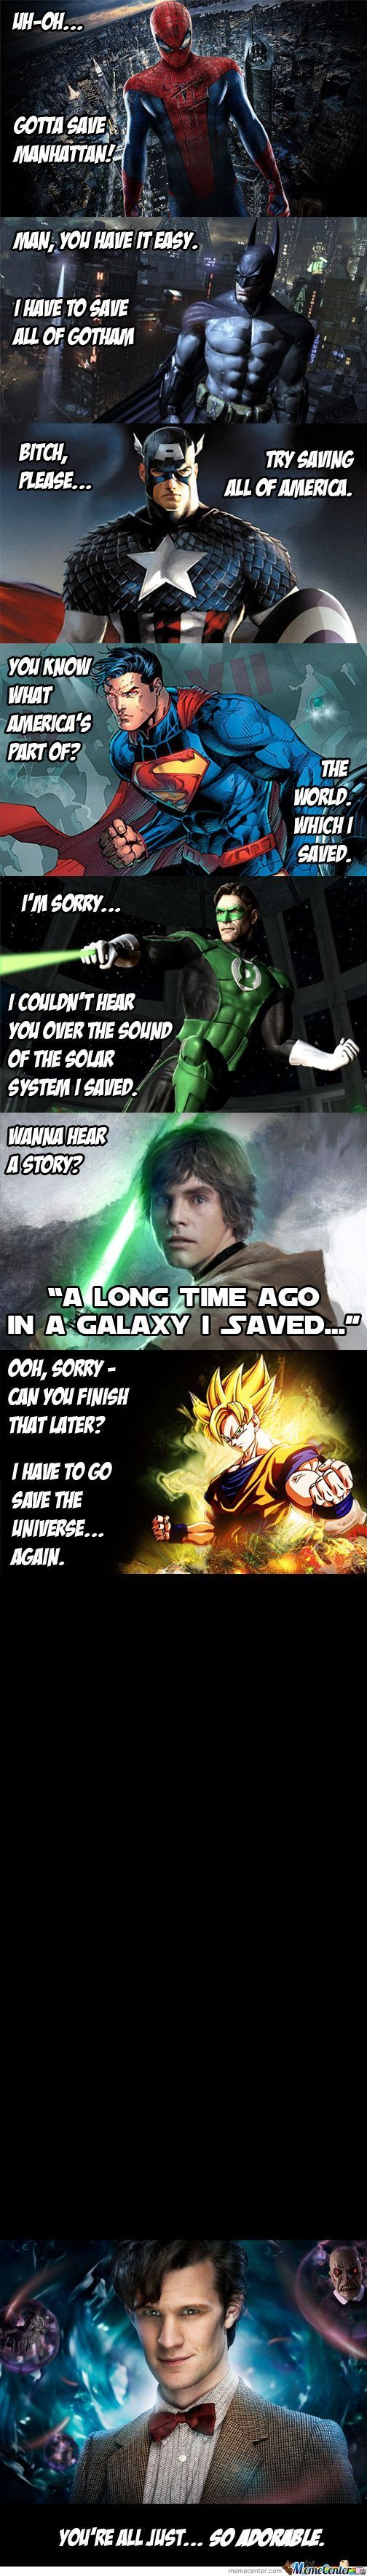 Actually green lantern protects more area in space than Jedi. And doctor who saves timelines only on earth so technically he would be after super man. But then again technically he protects the same amount as green lantern because there are infinite amounts of timelines. (if I said anything about doctor who that's incorrect it is because the show was too boring so I never bothered watching it.)